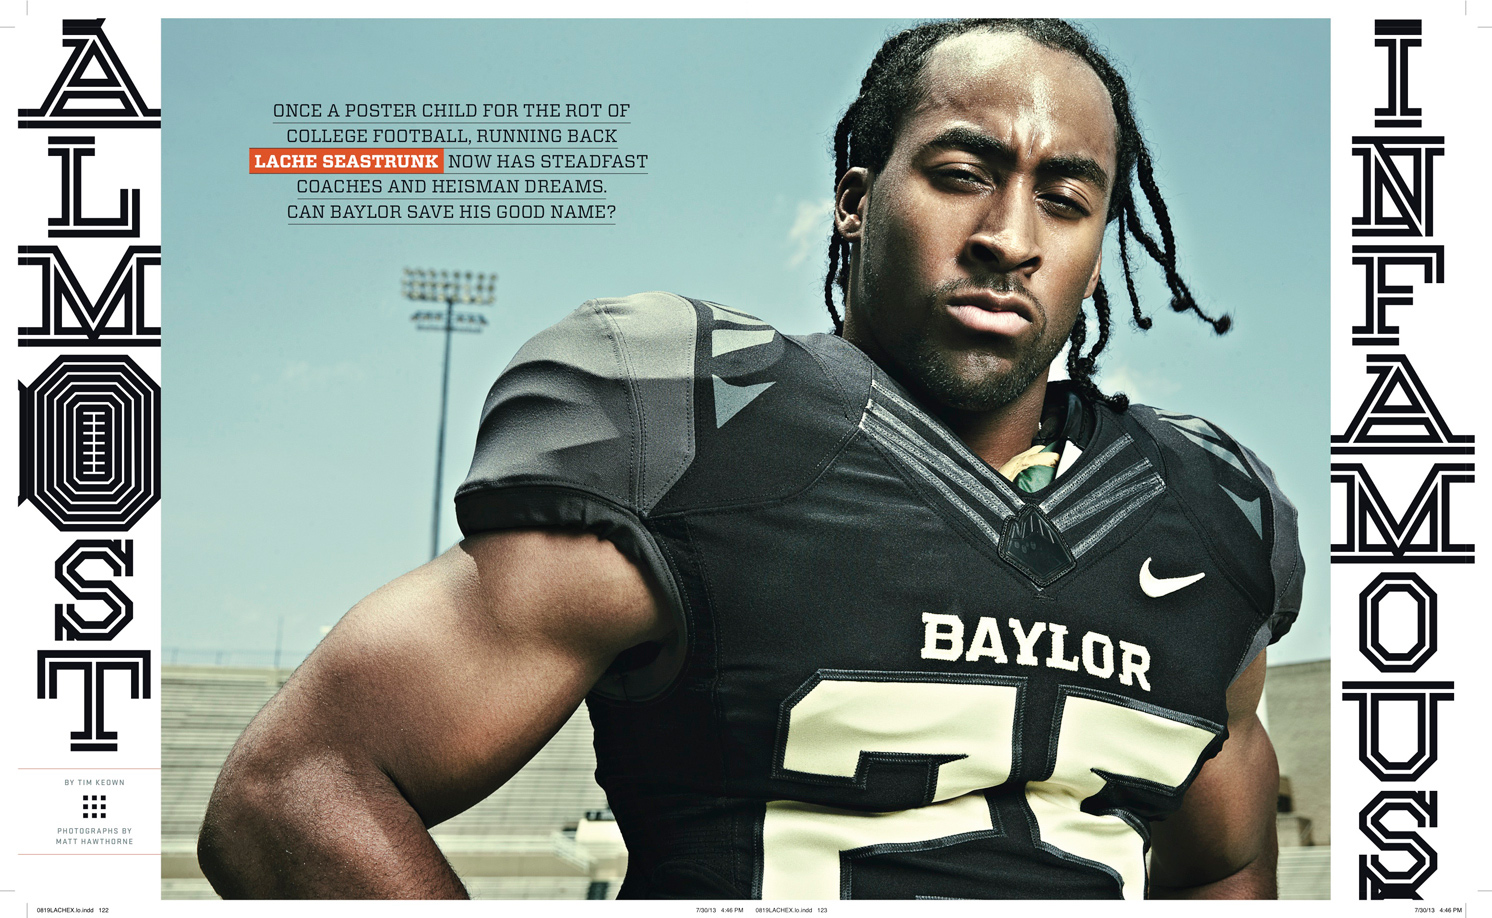 Lache-Seastrunk-ESPN-Magazine-Layout-blog